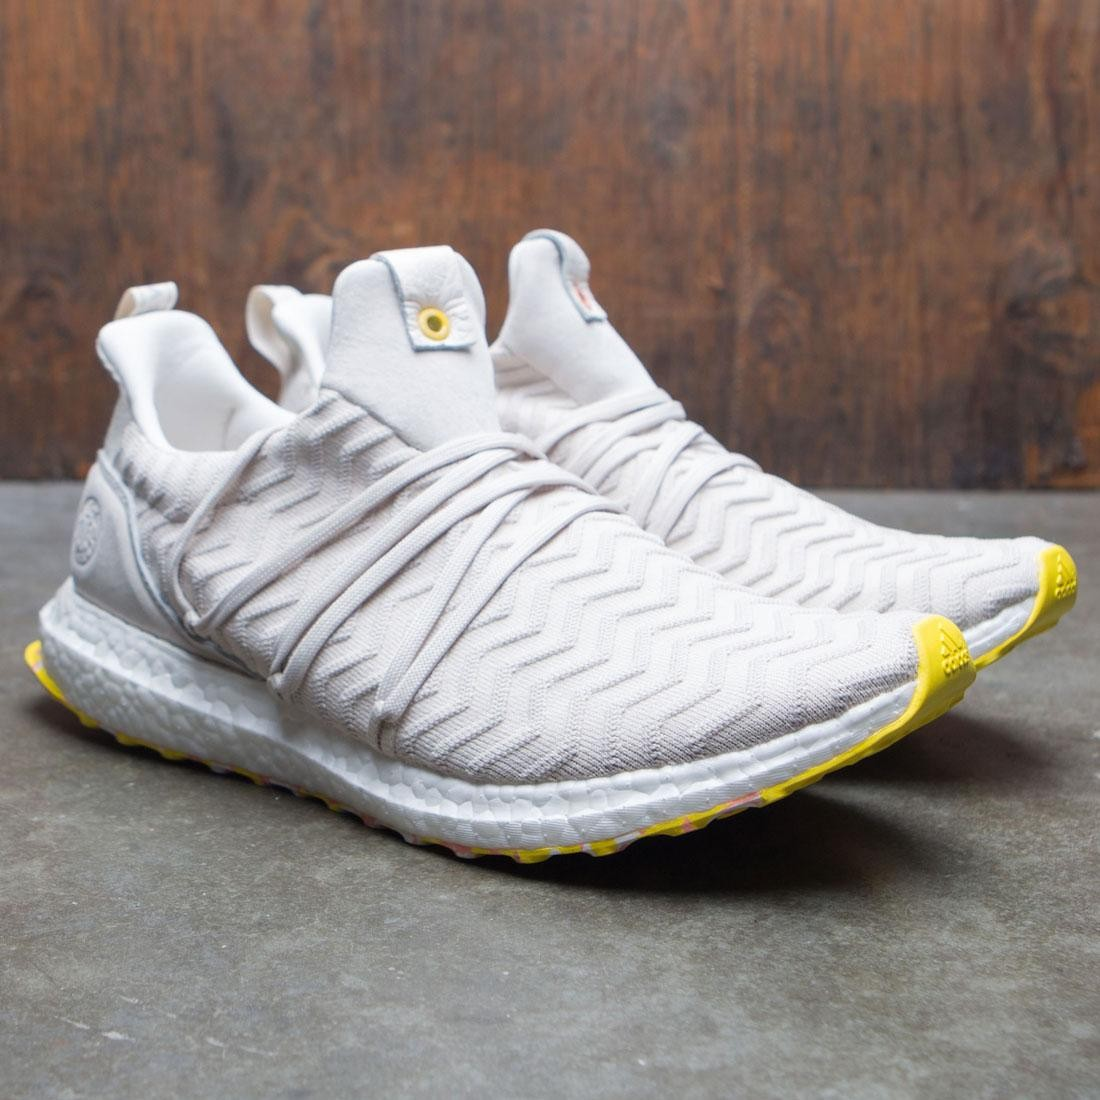 Adidas Consortium x A Kind Of Guise Men UltraBOOST AKOG (white core white punjab)